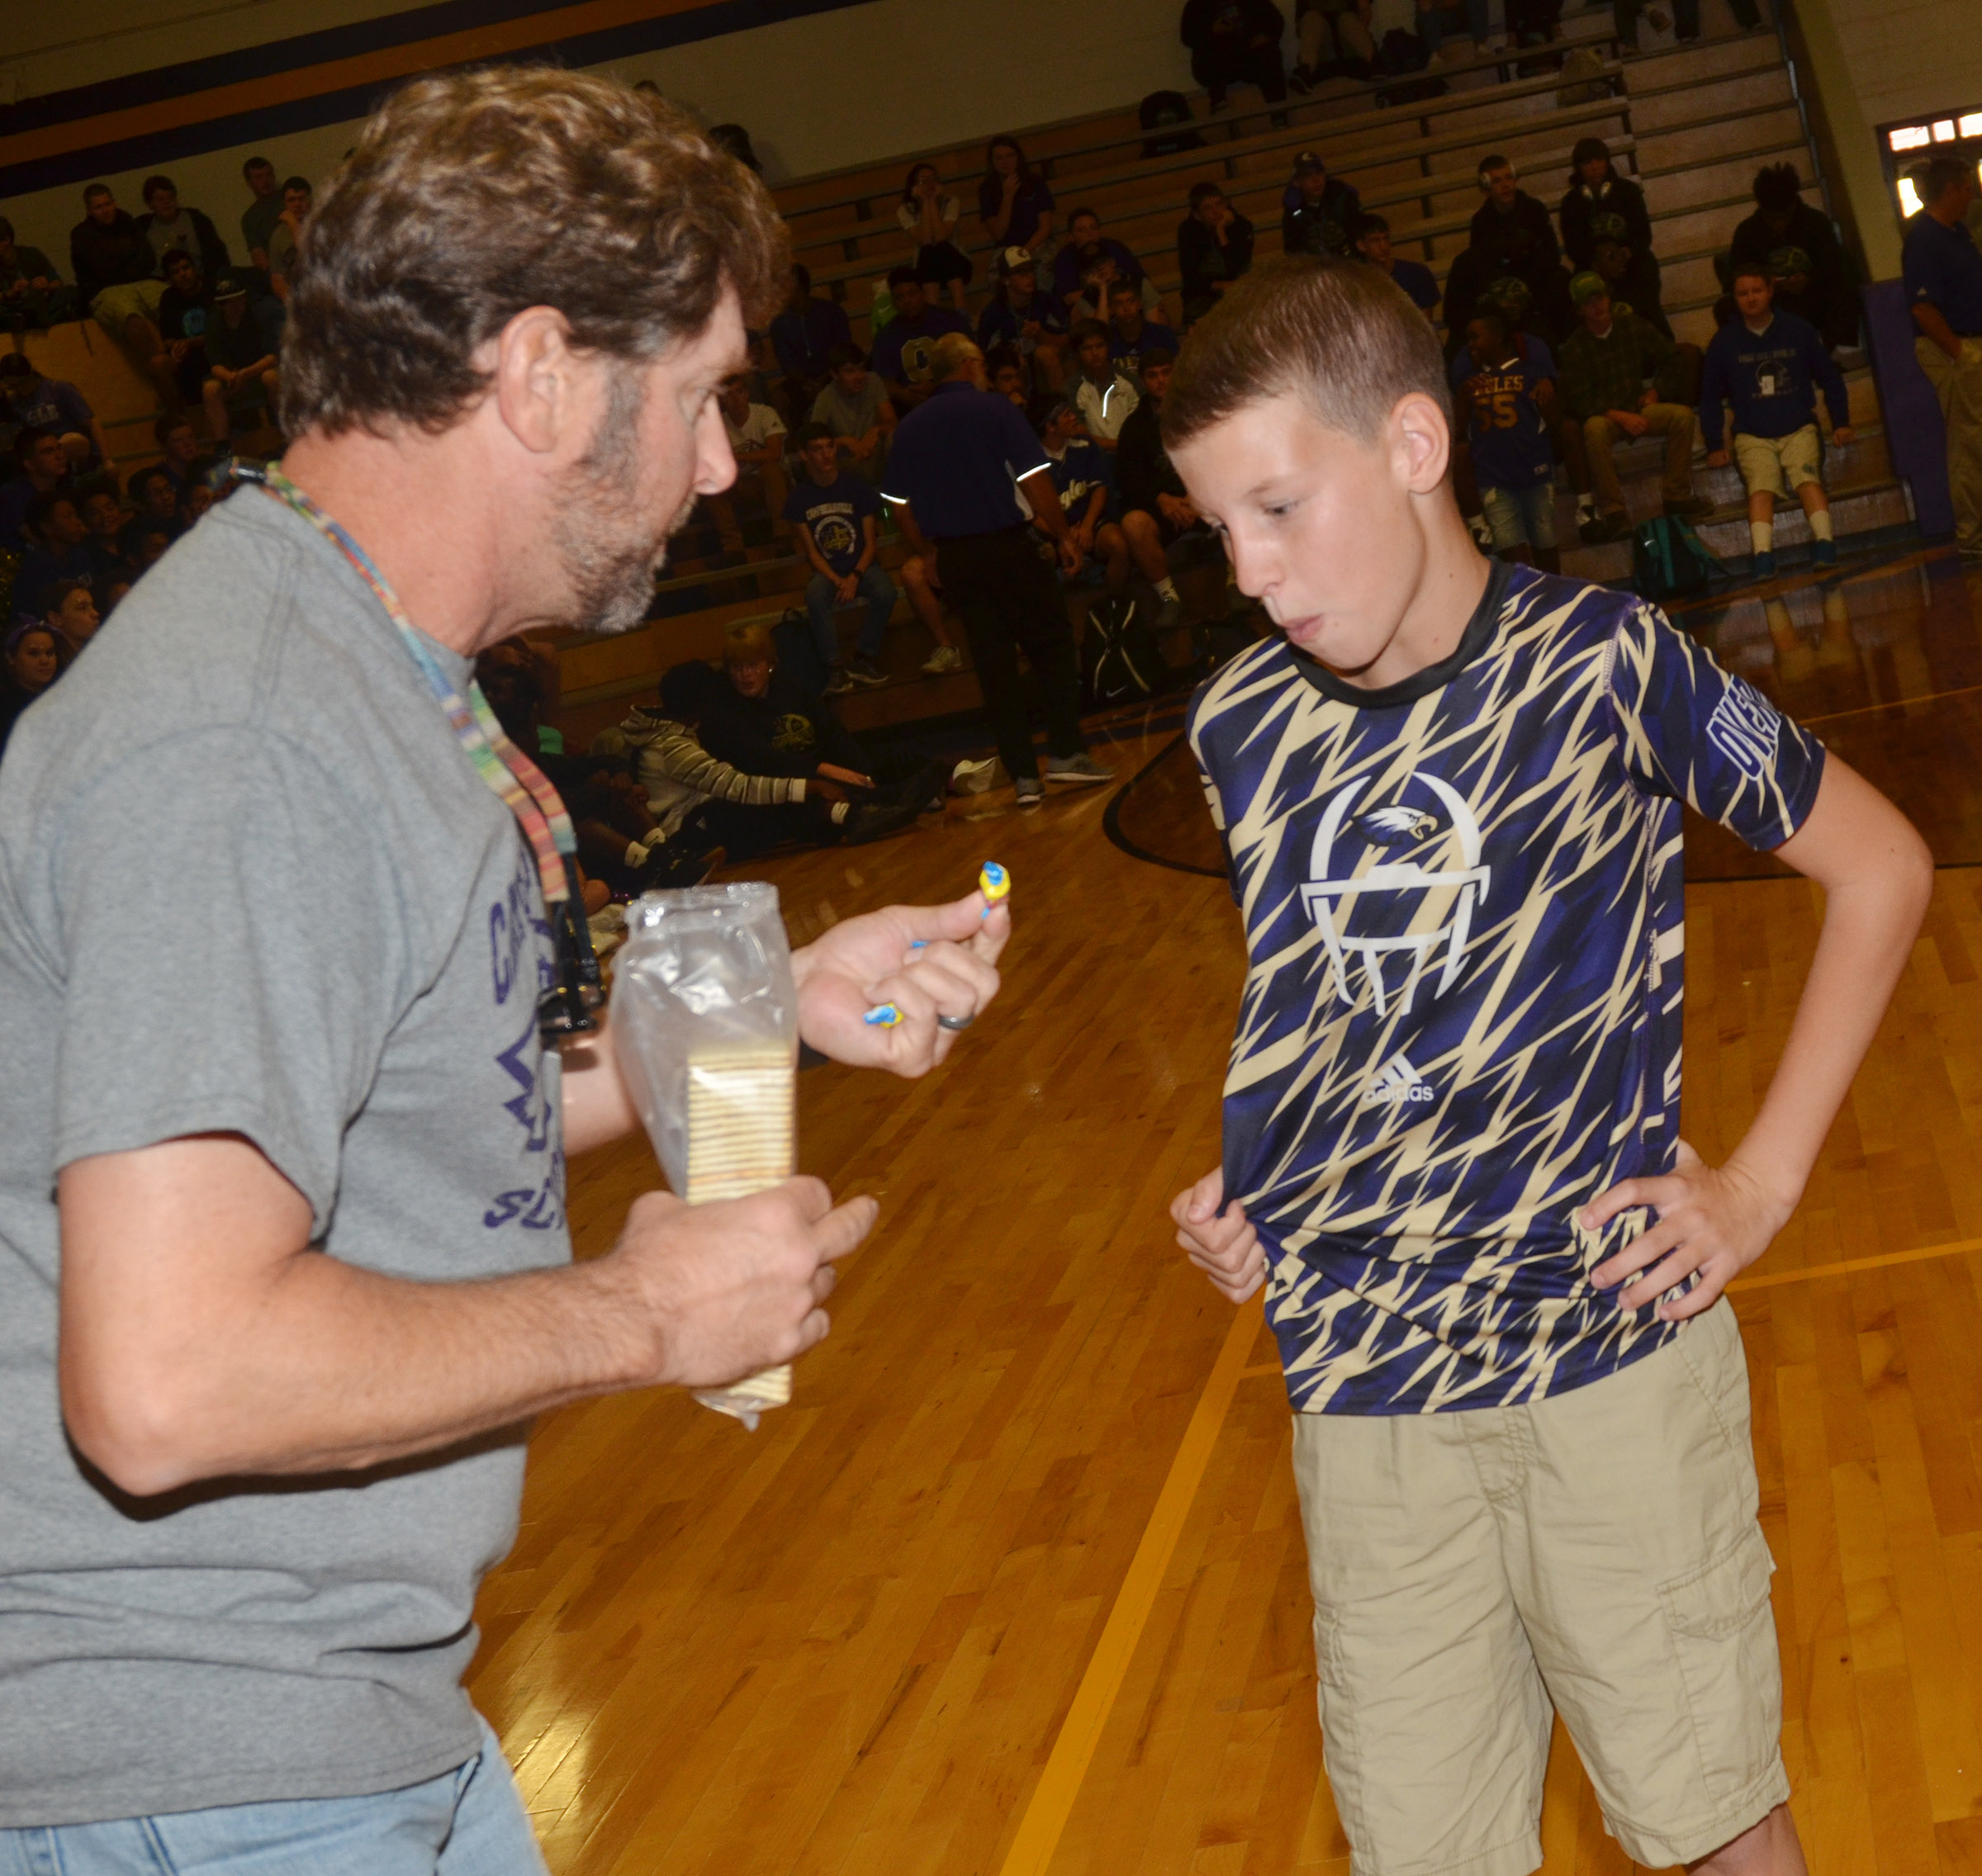 CES fifth-grader Rowan Petett eats a cracker during a spirit game.